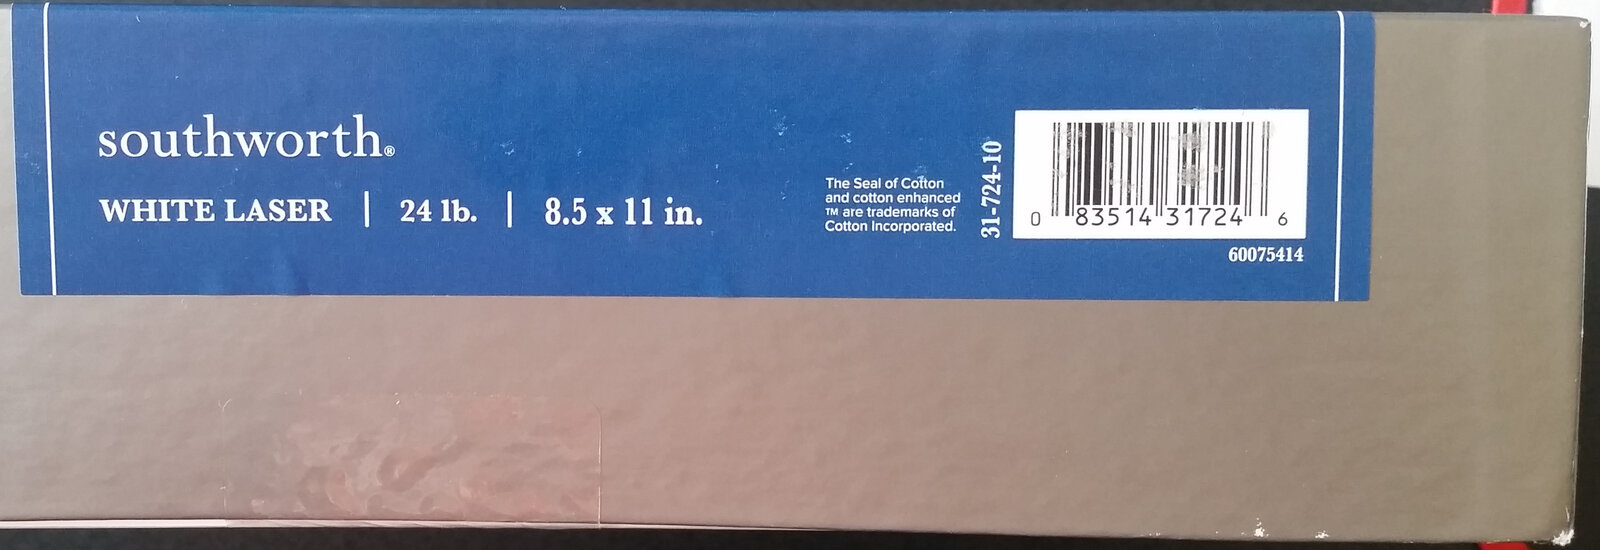 southworth laser  24lbs 25pct cotton packaging side b.jpg